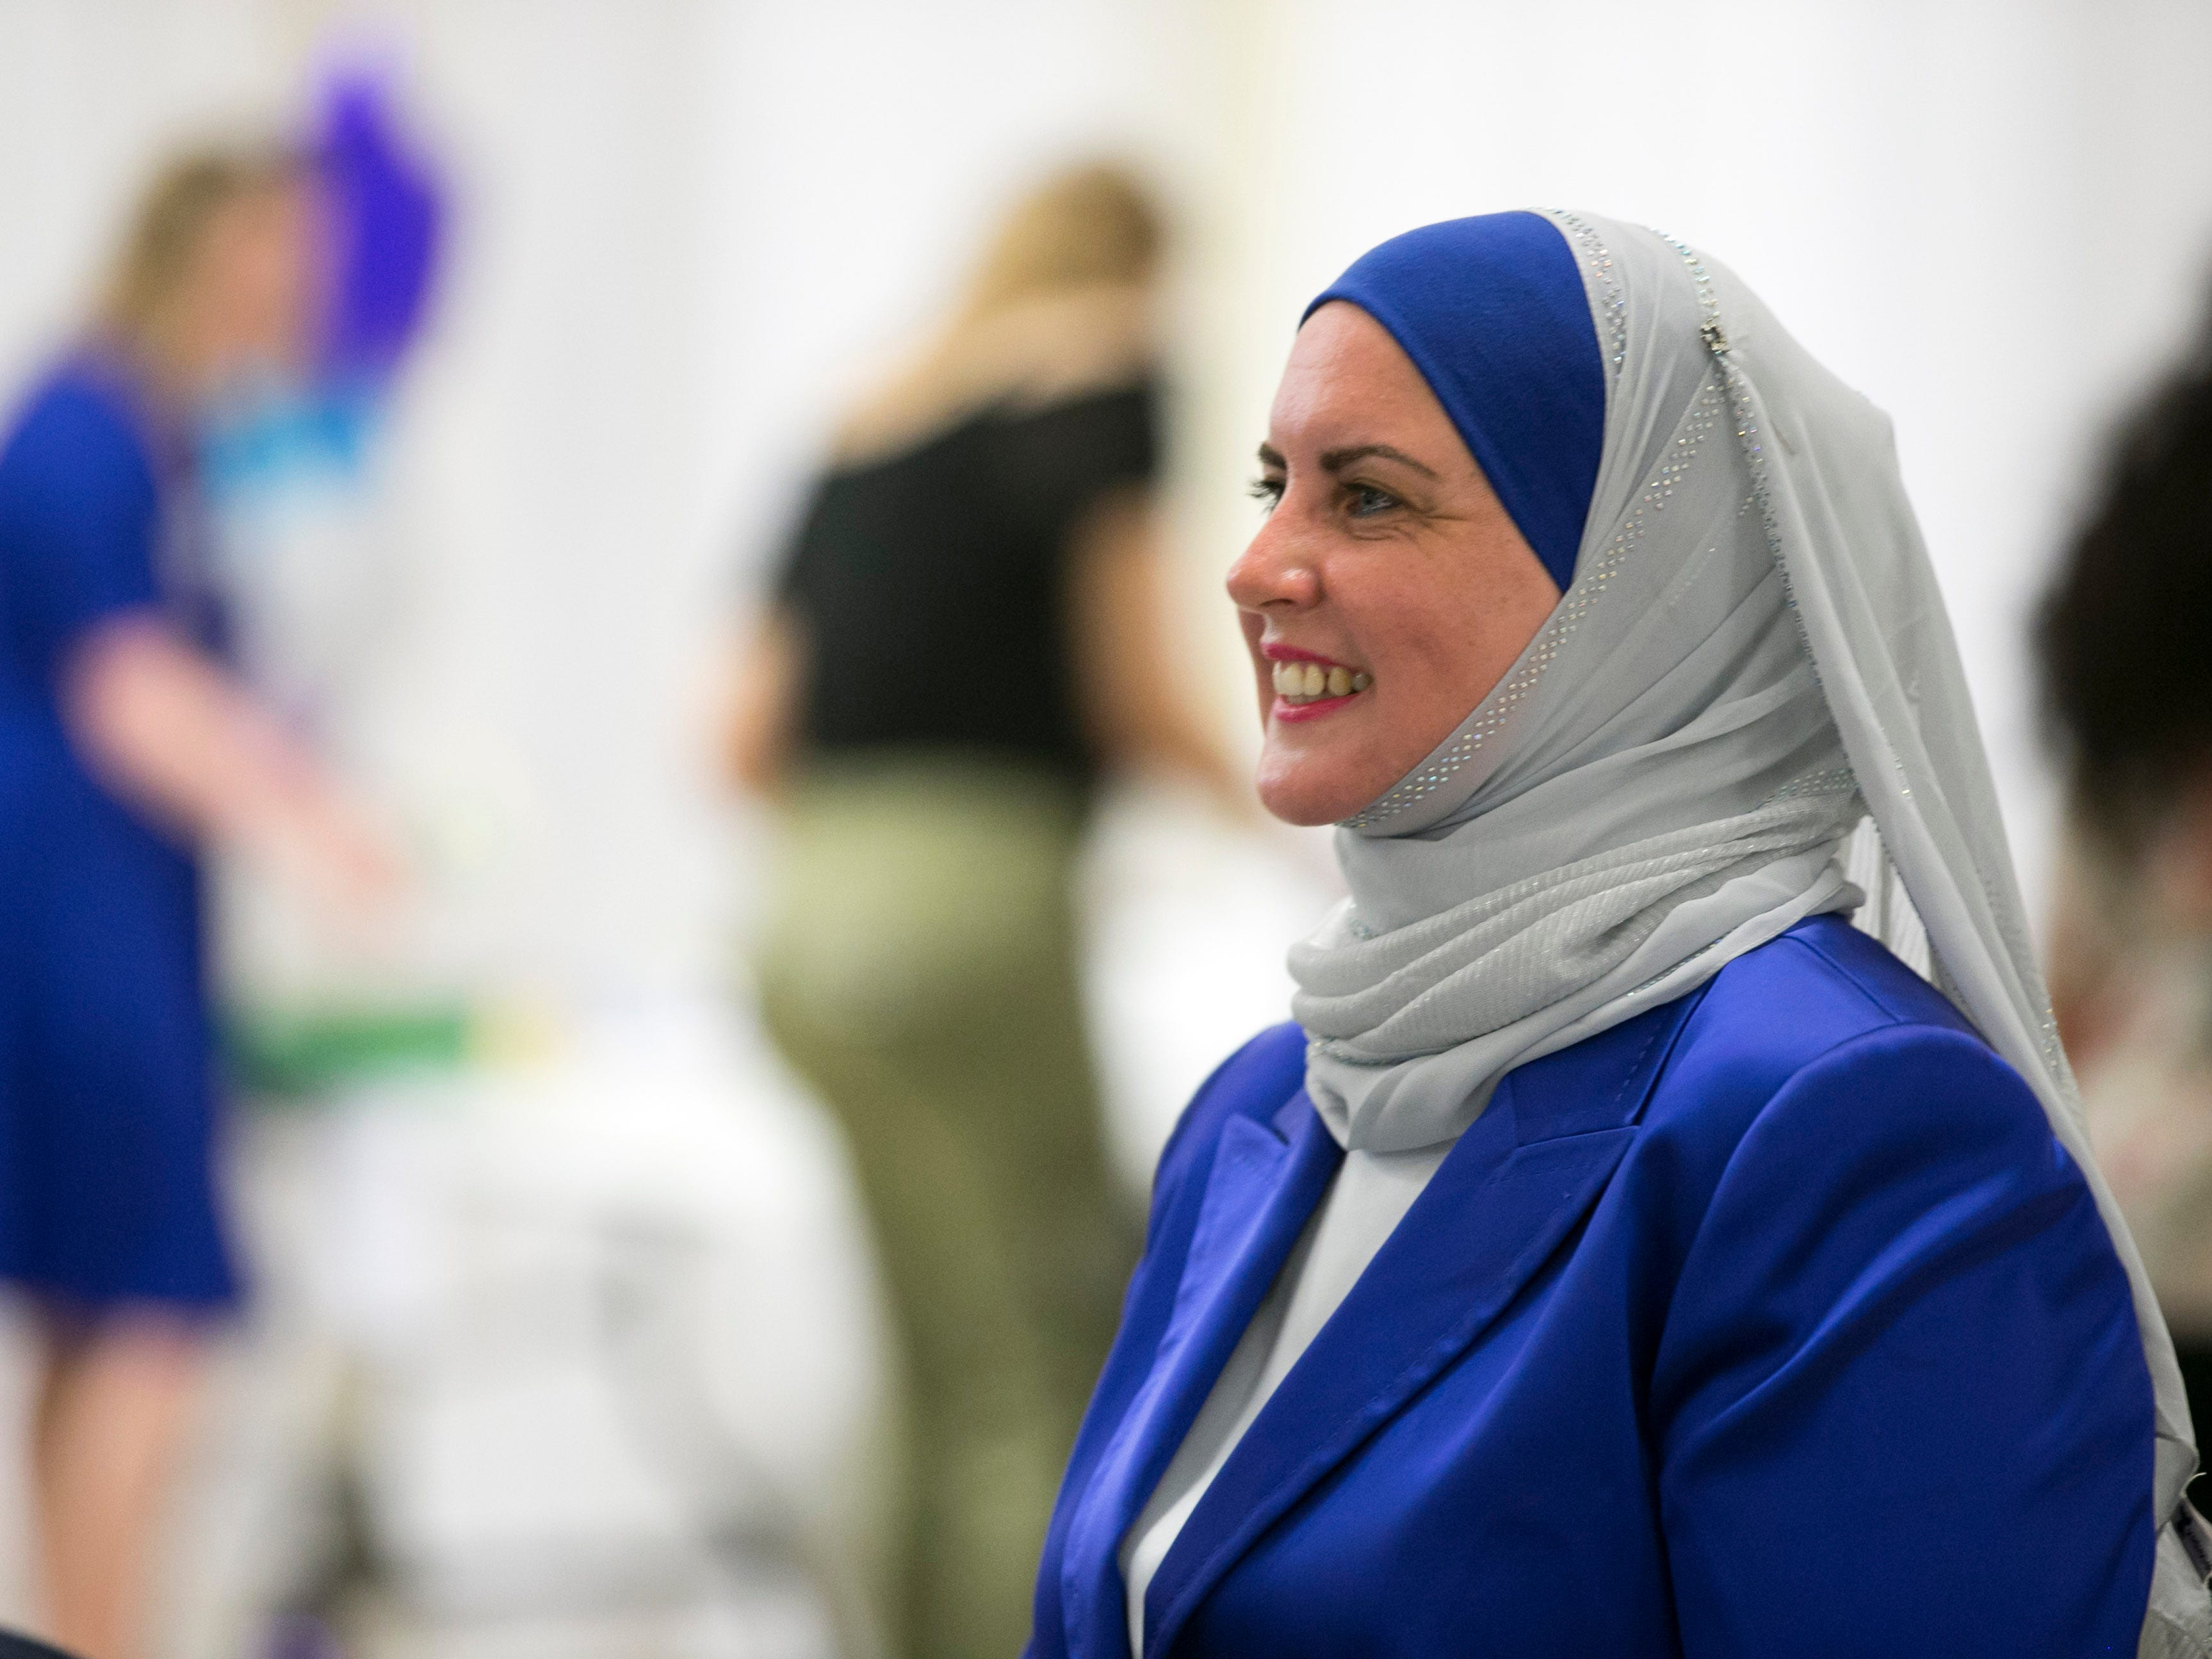 Deedra Abboud, who is vying for the Democratic nomination for the U.S. Senate seat, looks on at a watch party for the Arizona primary at Pearls Banquet Hall in Mesa on Tuesday evening, August 28, 2018.